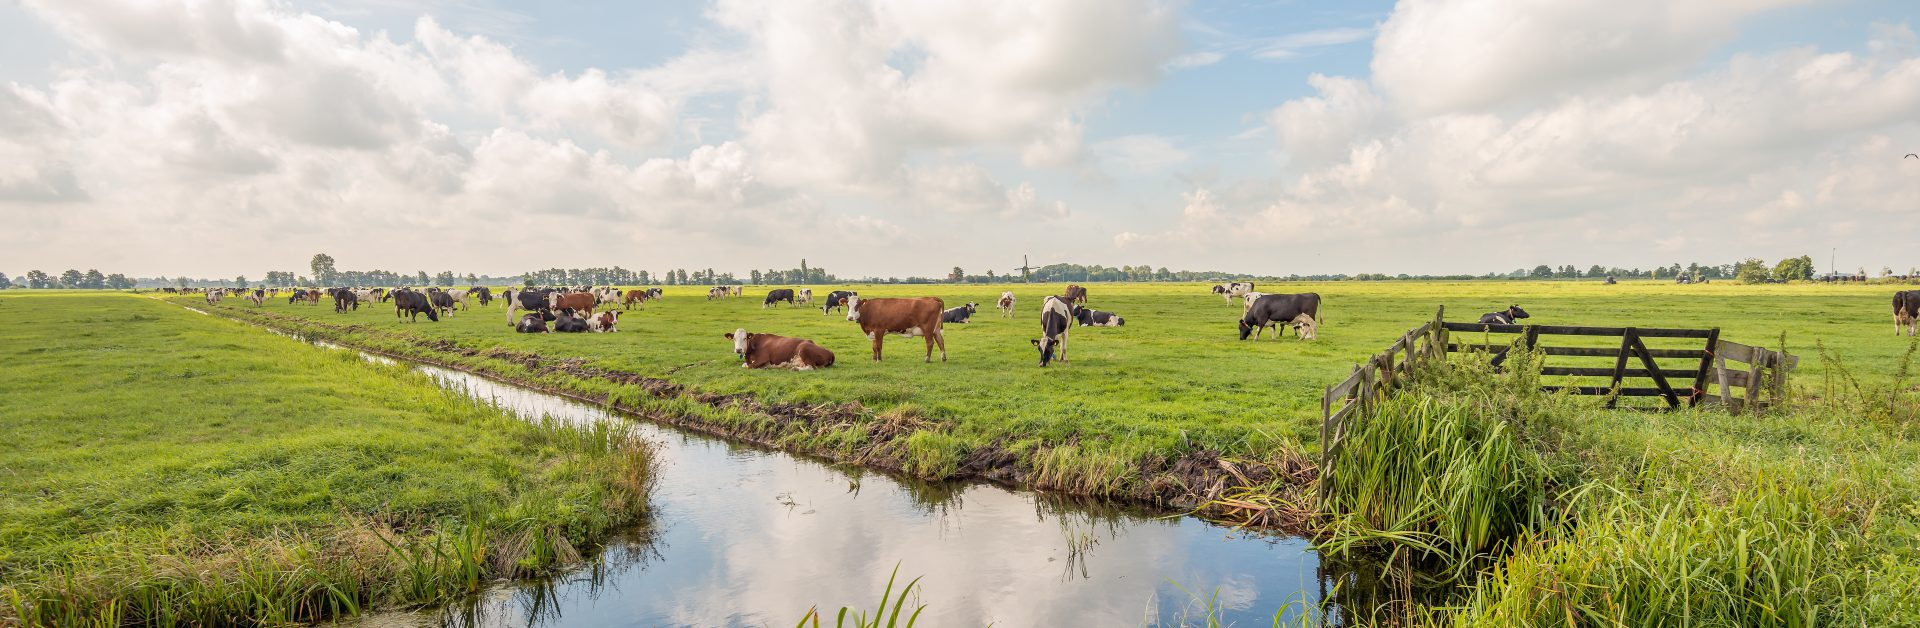 Typical,Dutch,Polder,Landscape,With,Grazing,Cows,In,The,Meadow